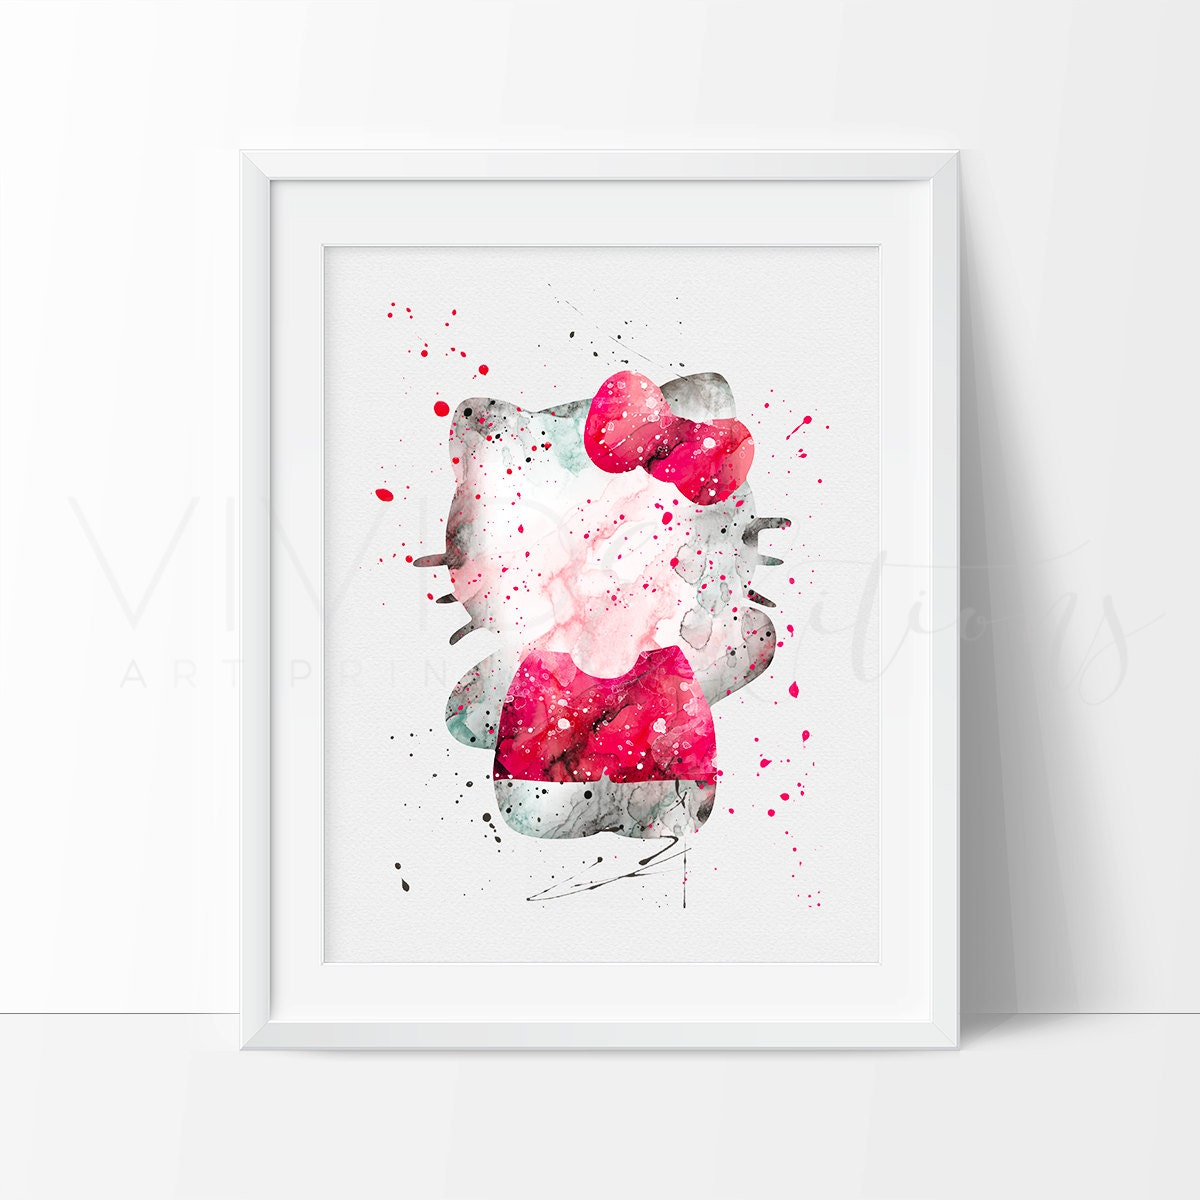 Hello kitty crib for sale - Hello Kitty Watercolor Print Baby Girl Nursery Wall Art Kids Room Decor Bedroom Decor Home Decor Birthday Gift No 15